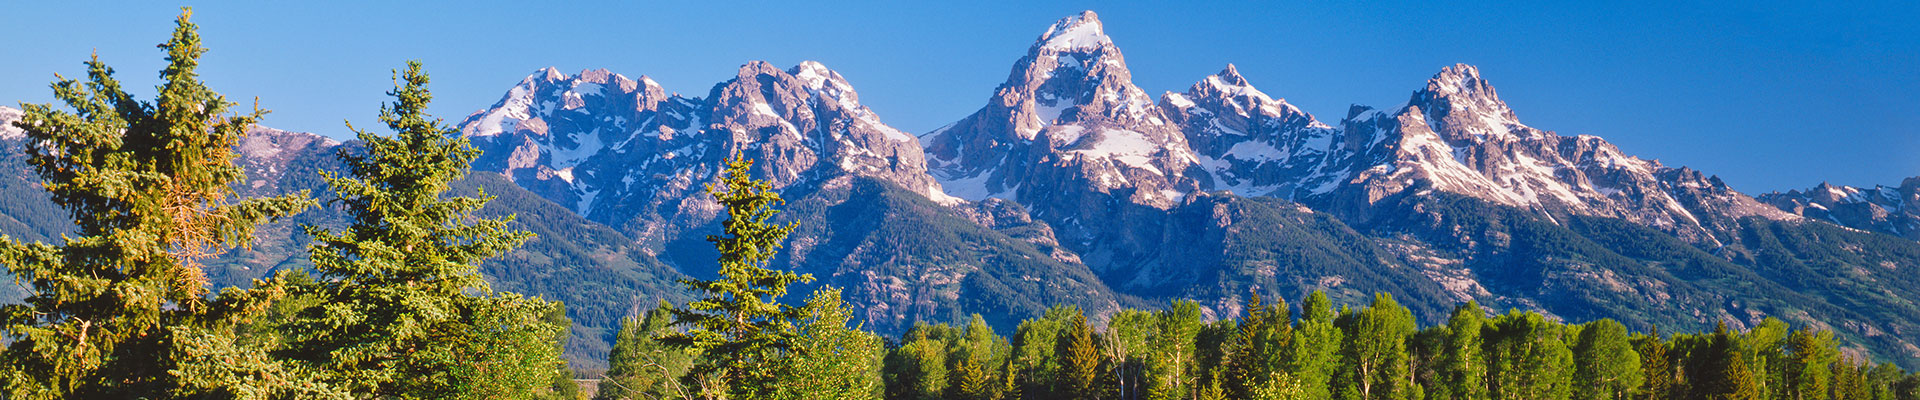 Fantasy RV Tours: 33 Day Rocky Mountain National Parks of the North (33URMF-071819)